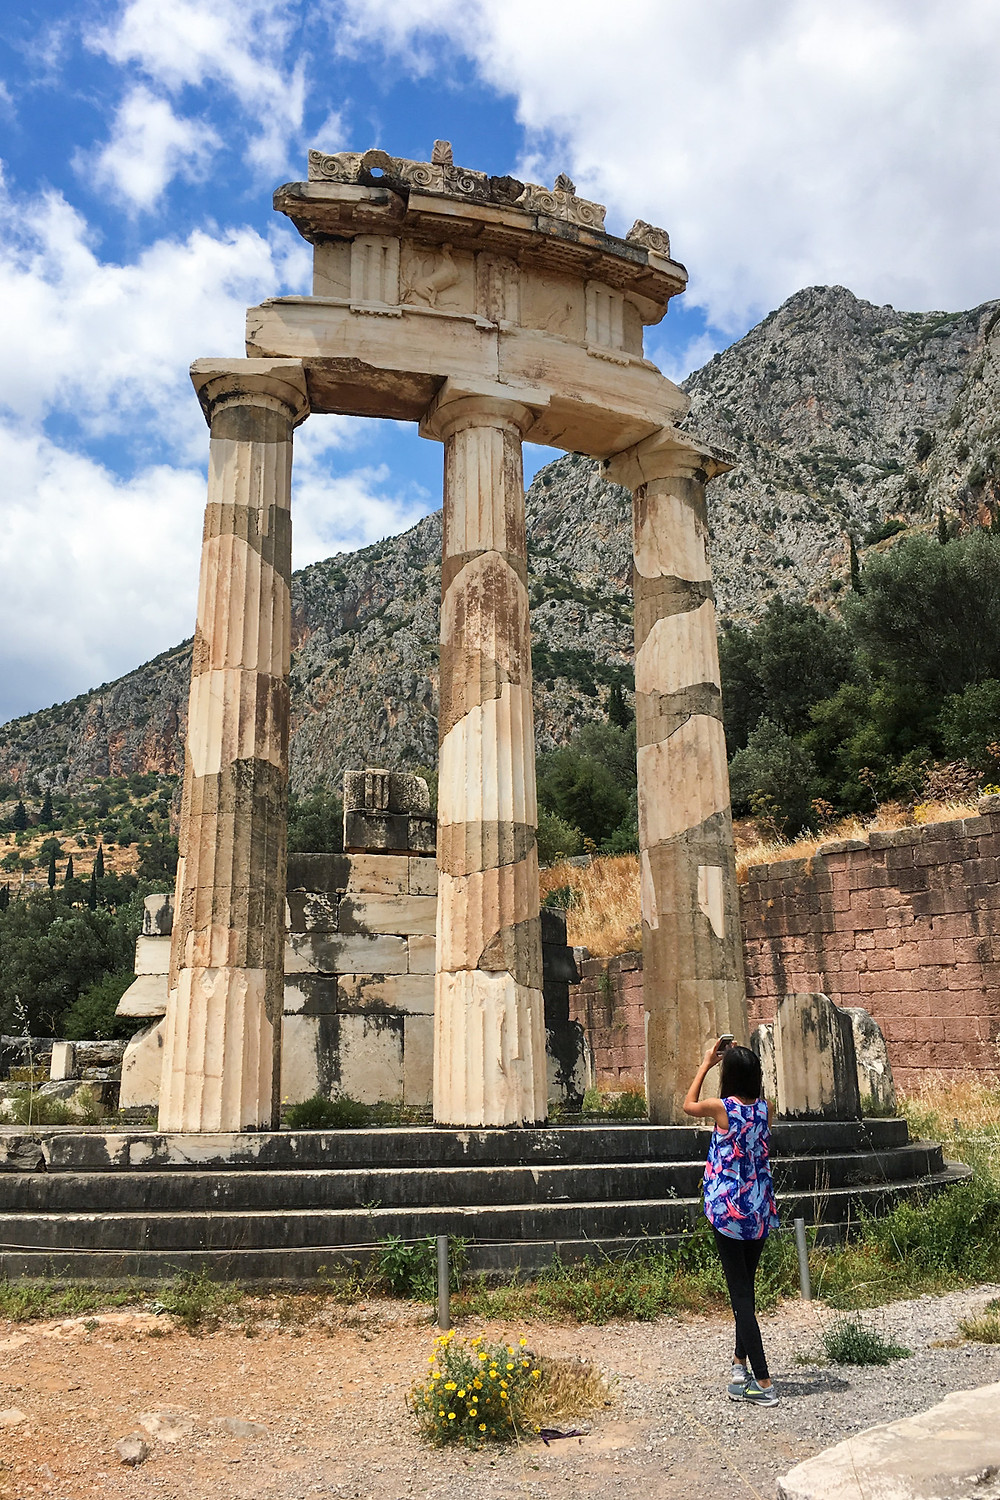 Eryn stands beneath the three standing pillars of the tholos to take a photo